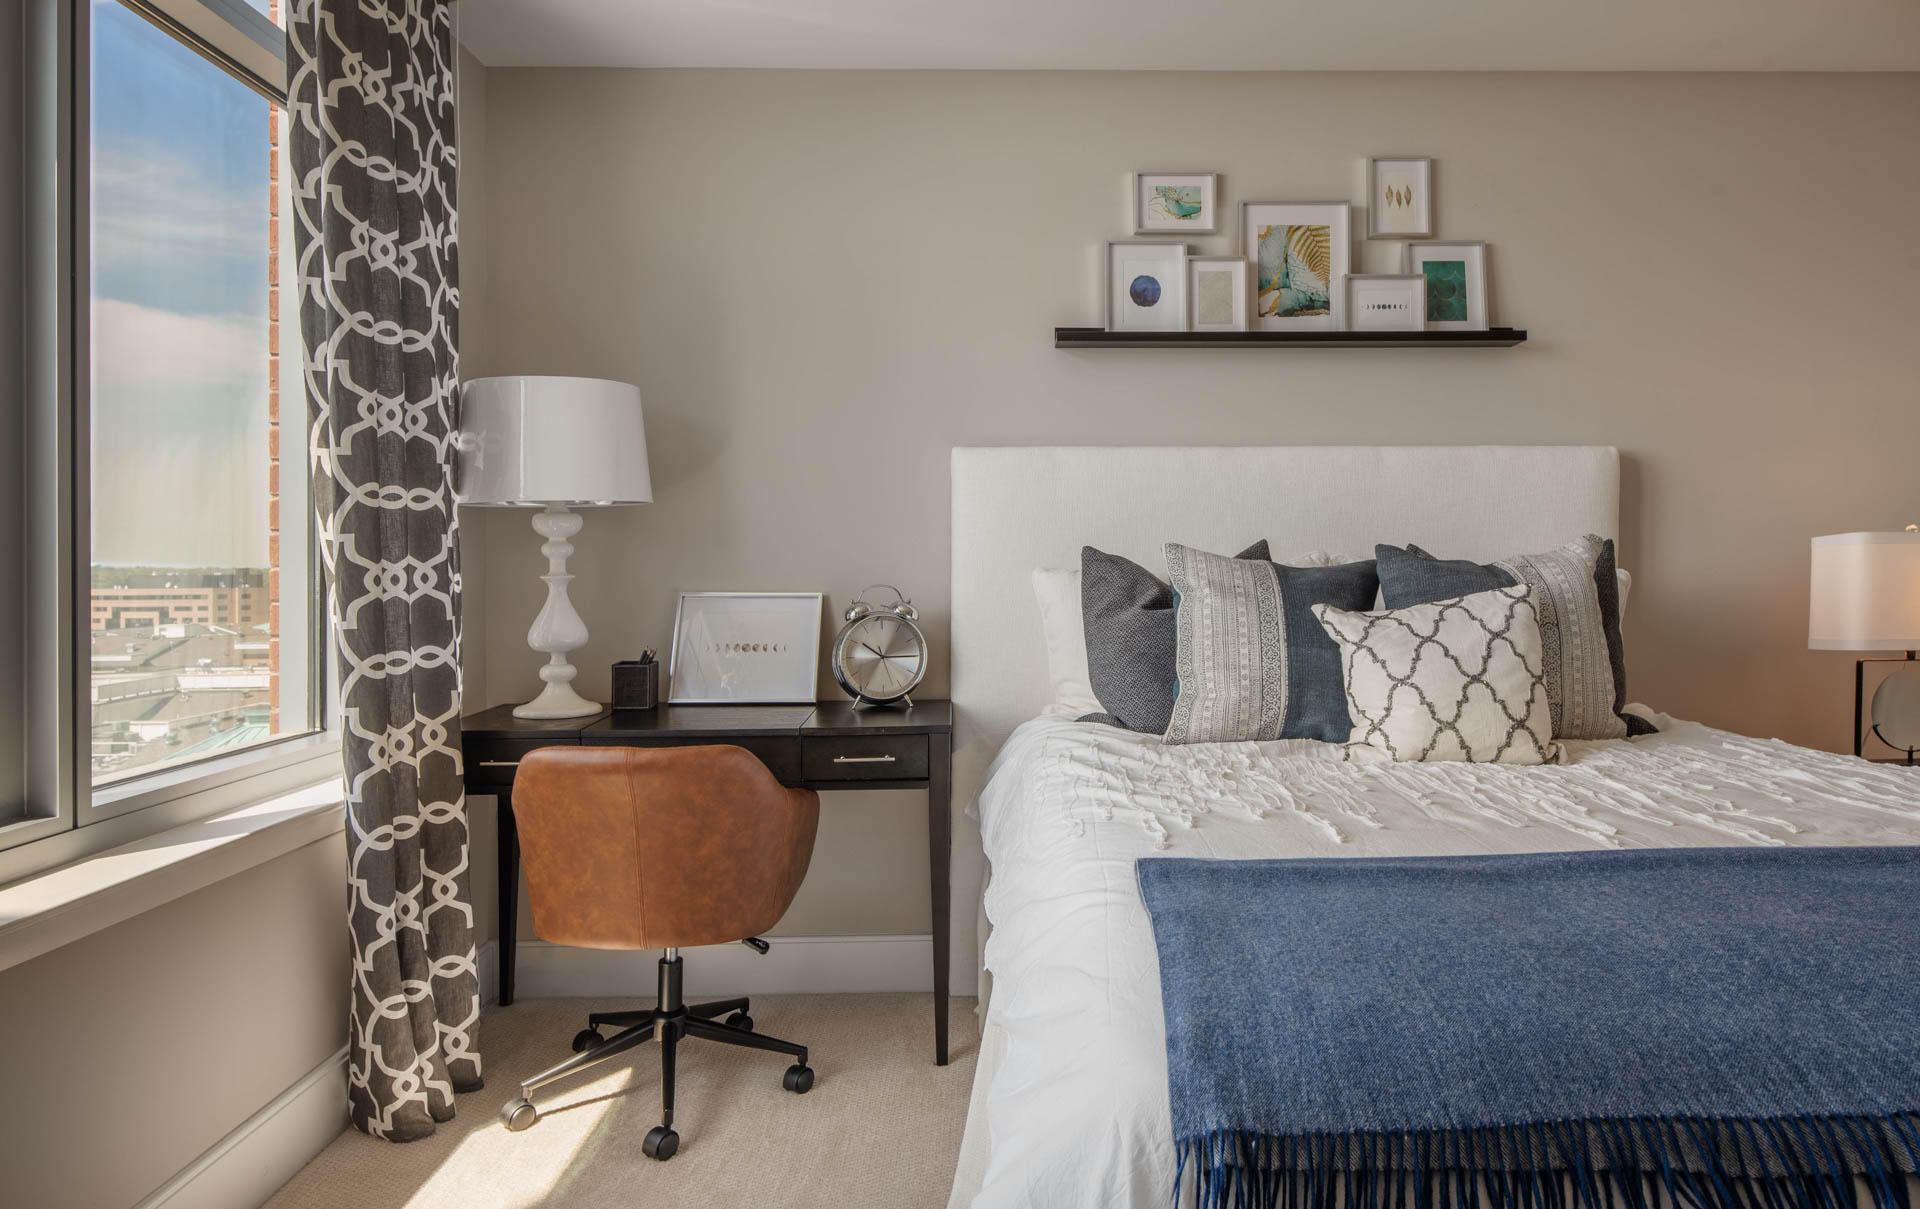 Close in detail of window lighting up queen bed and small desk with bright leather task chair